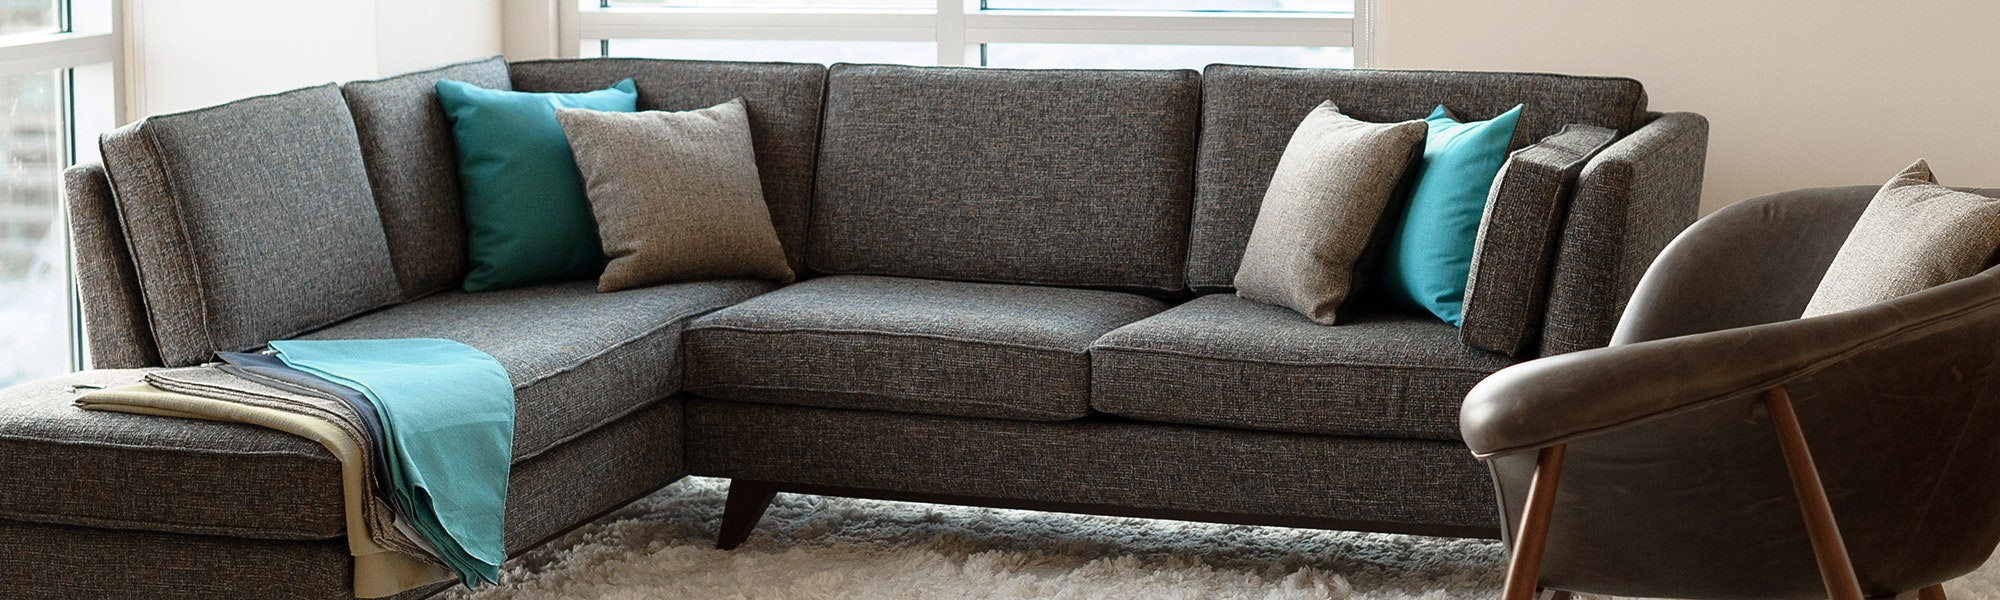 Professional Upholstery Cleaning North Perth